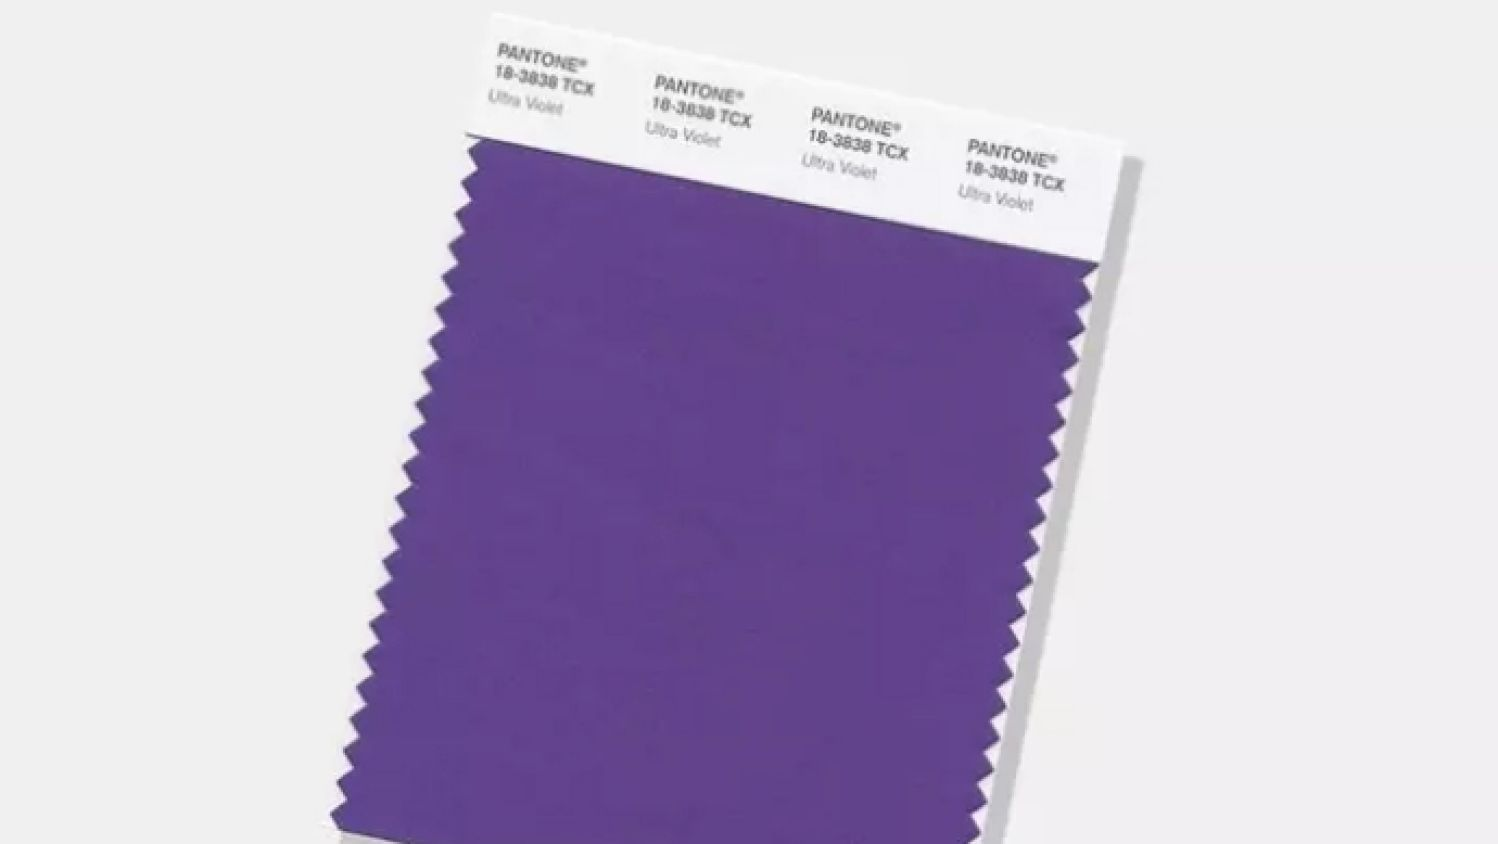 Rock Your Presentations With Pantone's 2018 Color: Ultra Violet